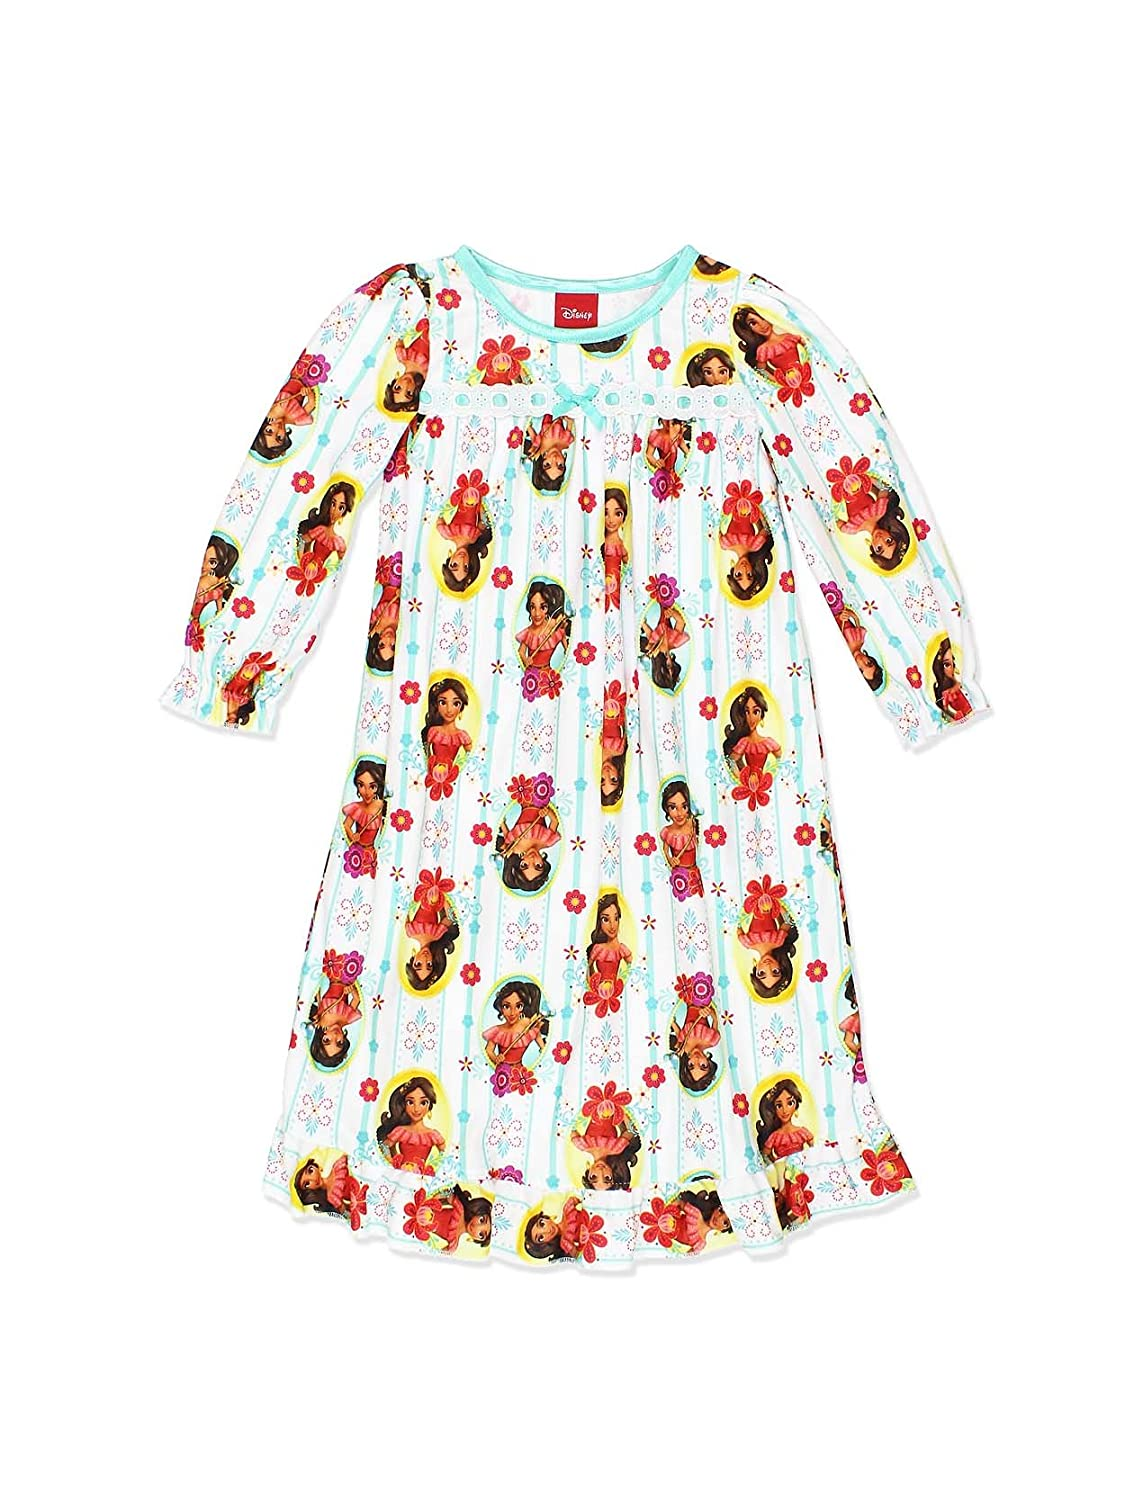 Disney Elena of Avalor Girls Flannel Granny Gown Nightgown (Toddler/Little Kid/Big Kid) manufacturer